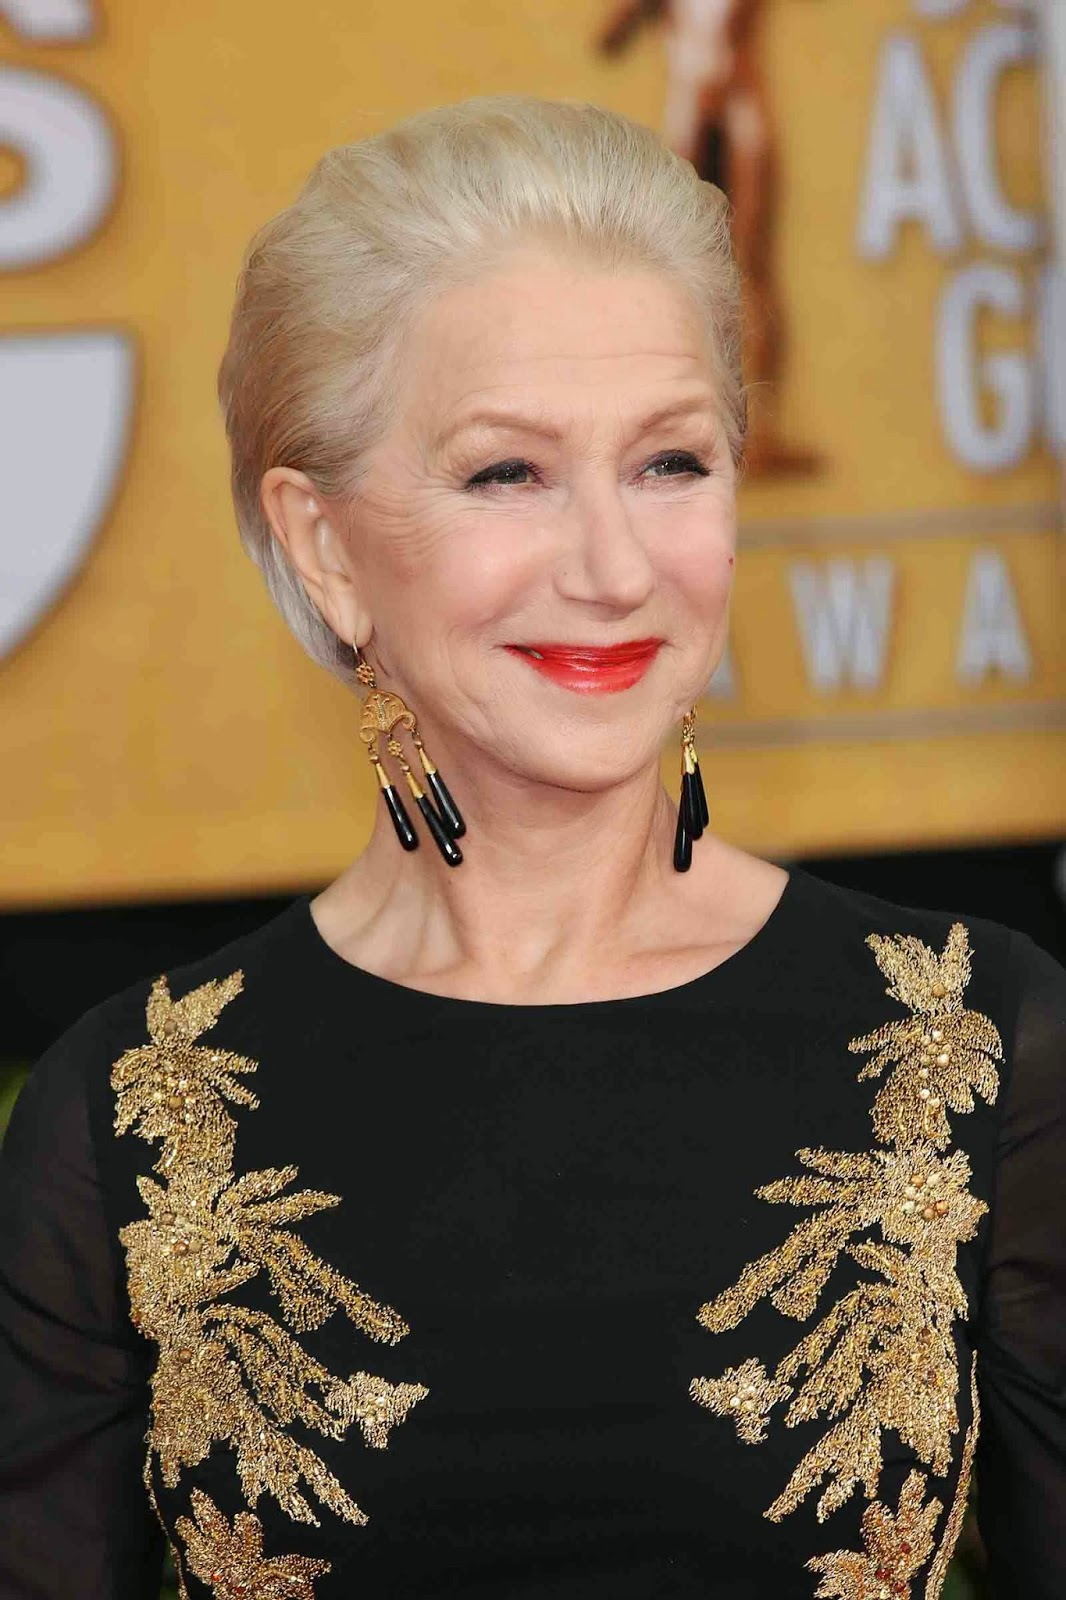 Helen Mirren Comes To Broadway In The Audience